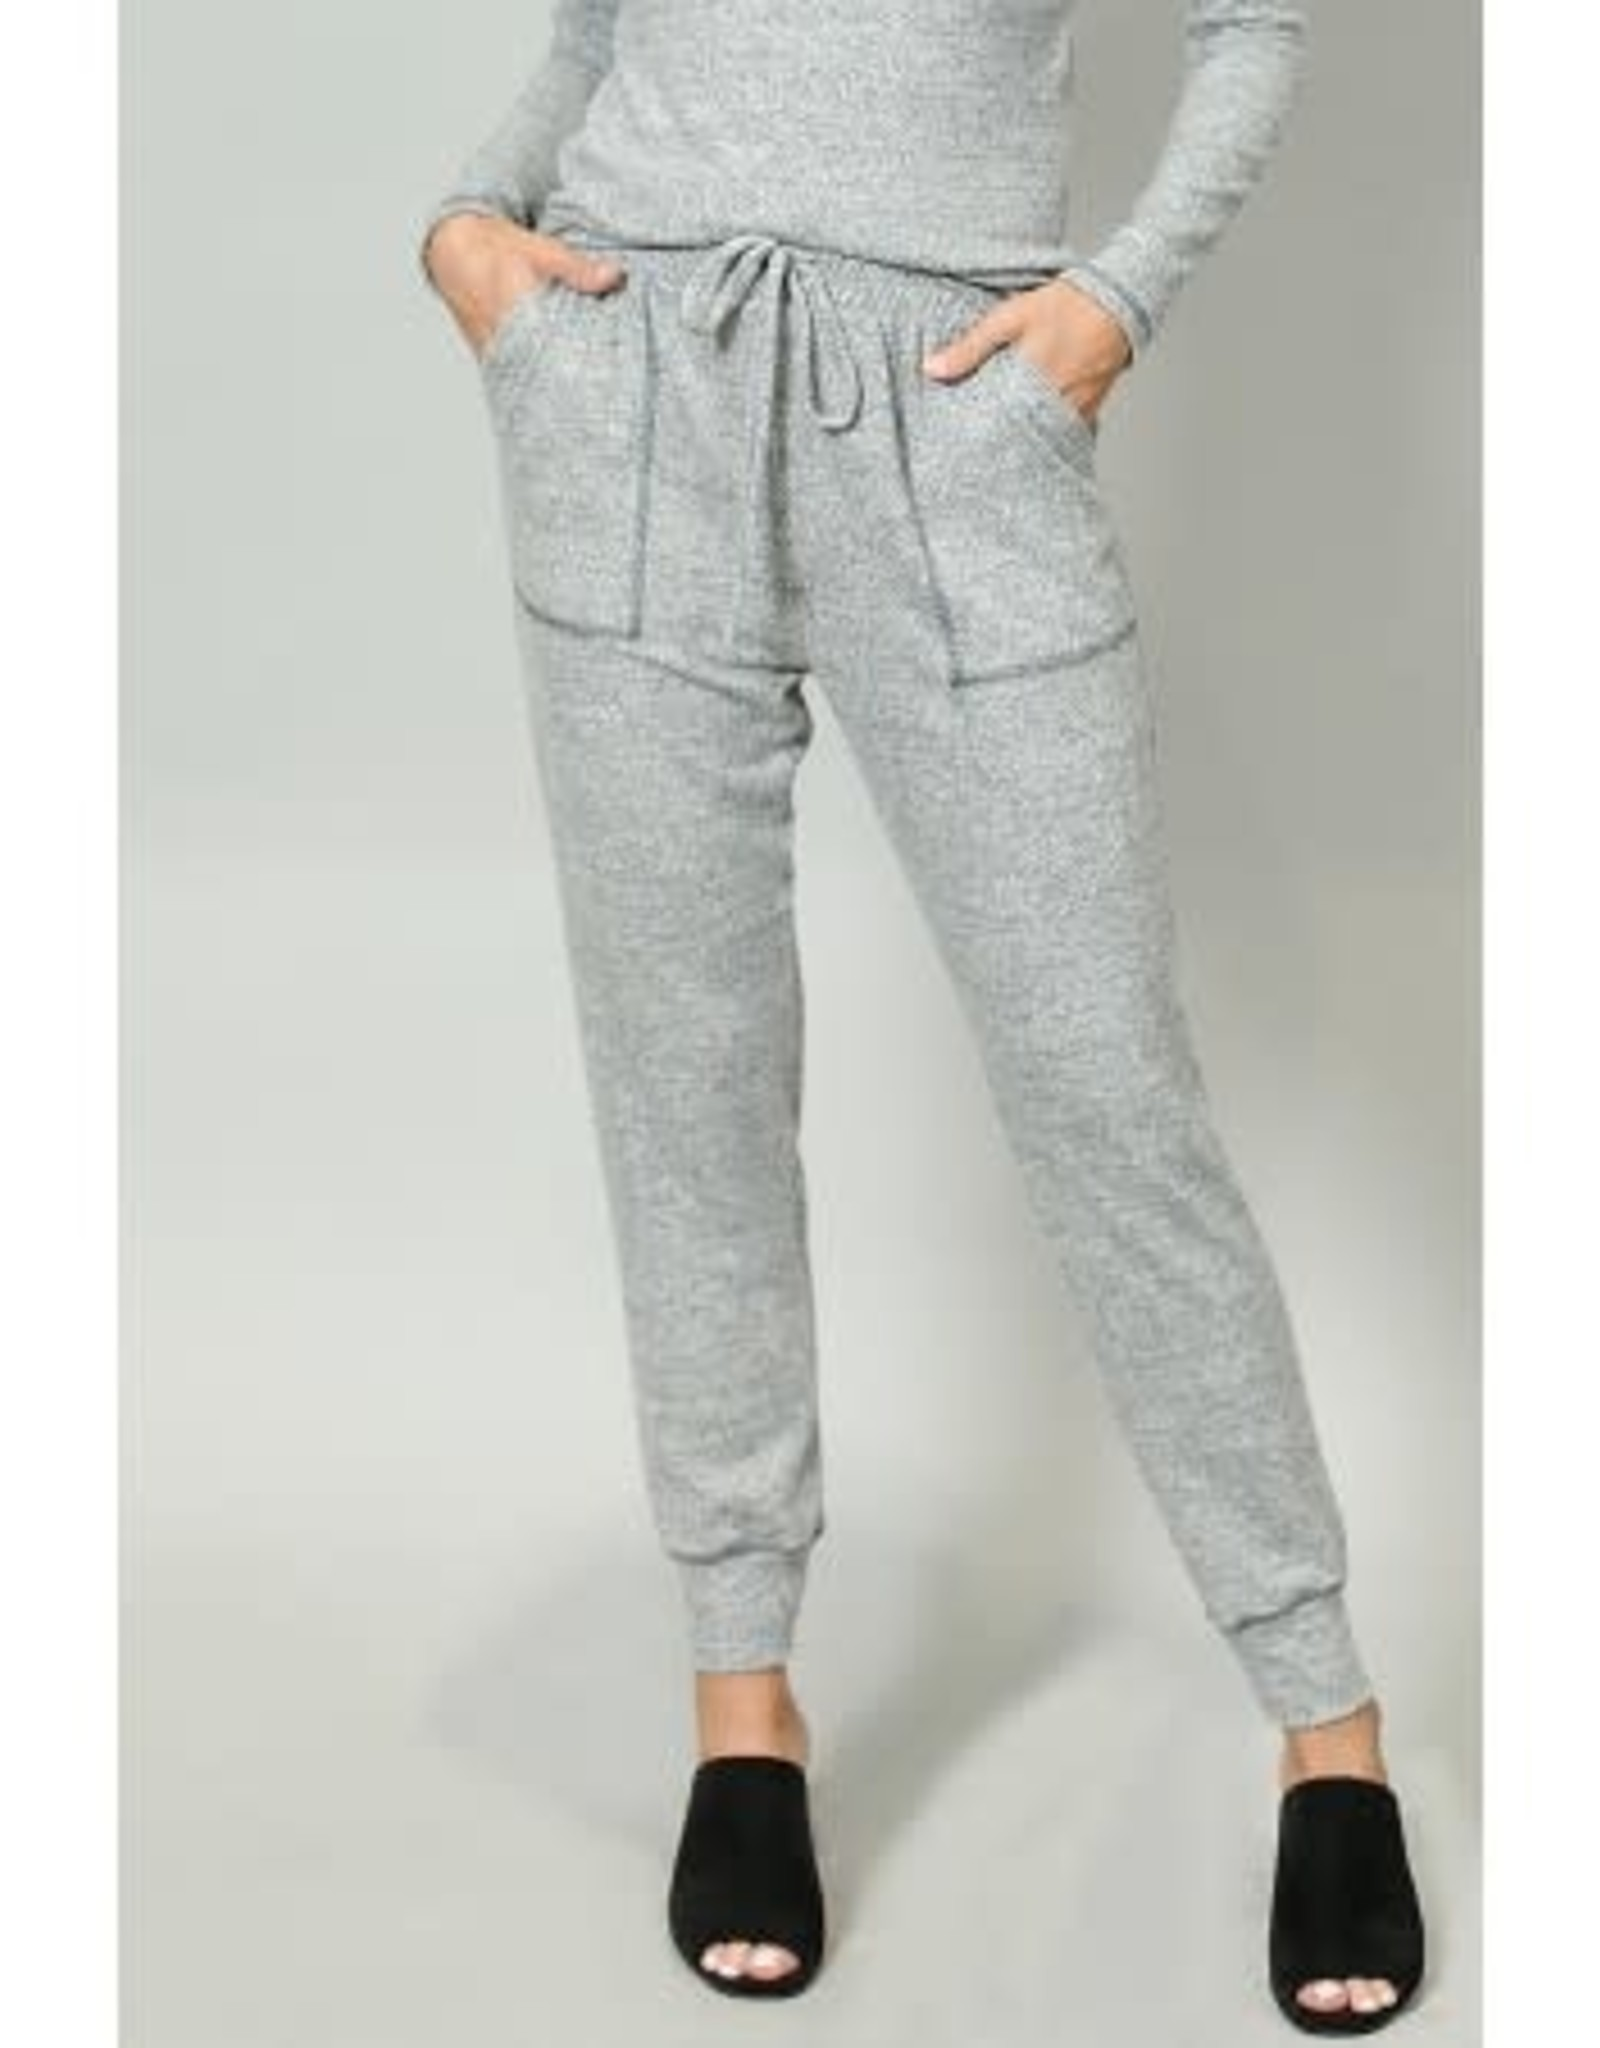 Coin1804 Cozy Contrast Stitch Pocket Jogger